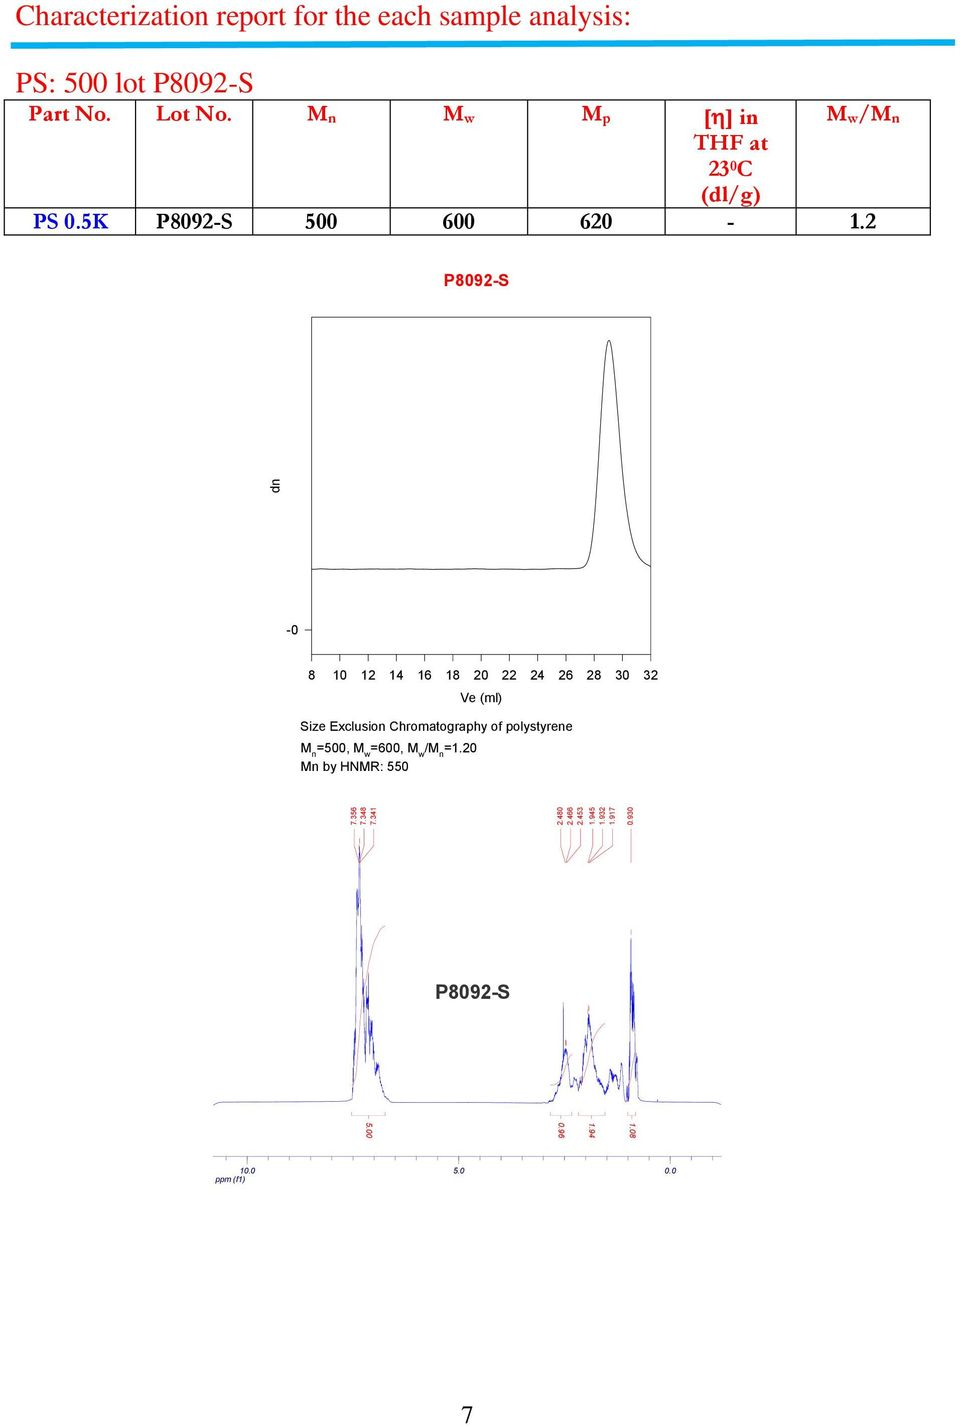 2 P8092-S dn -0 8 10 12 14 16 18 20 22 24 26 28 30 32 Ve (ml) Size Exclusion Chromatography of